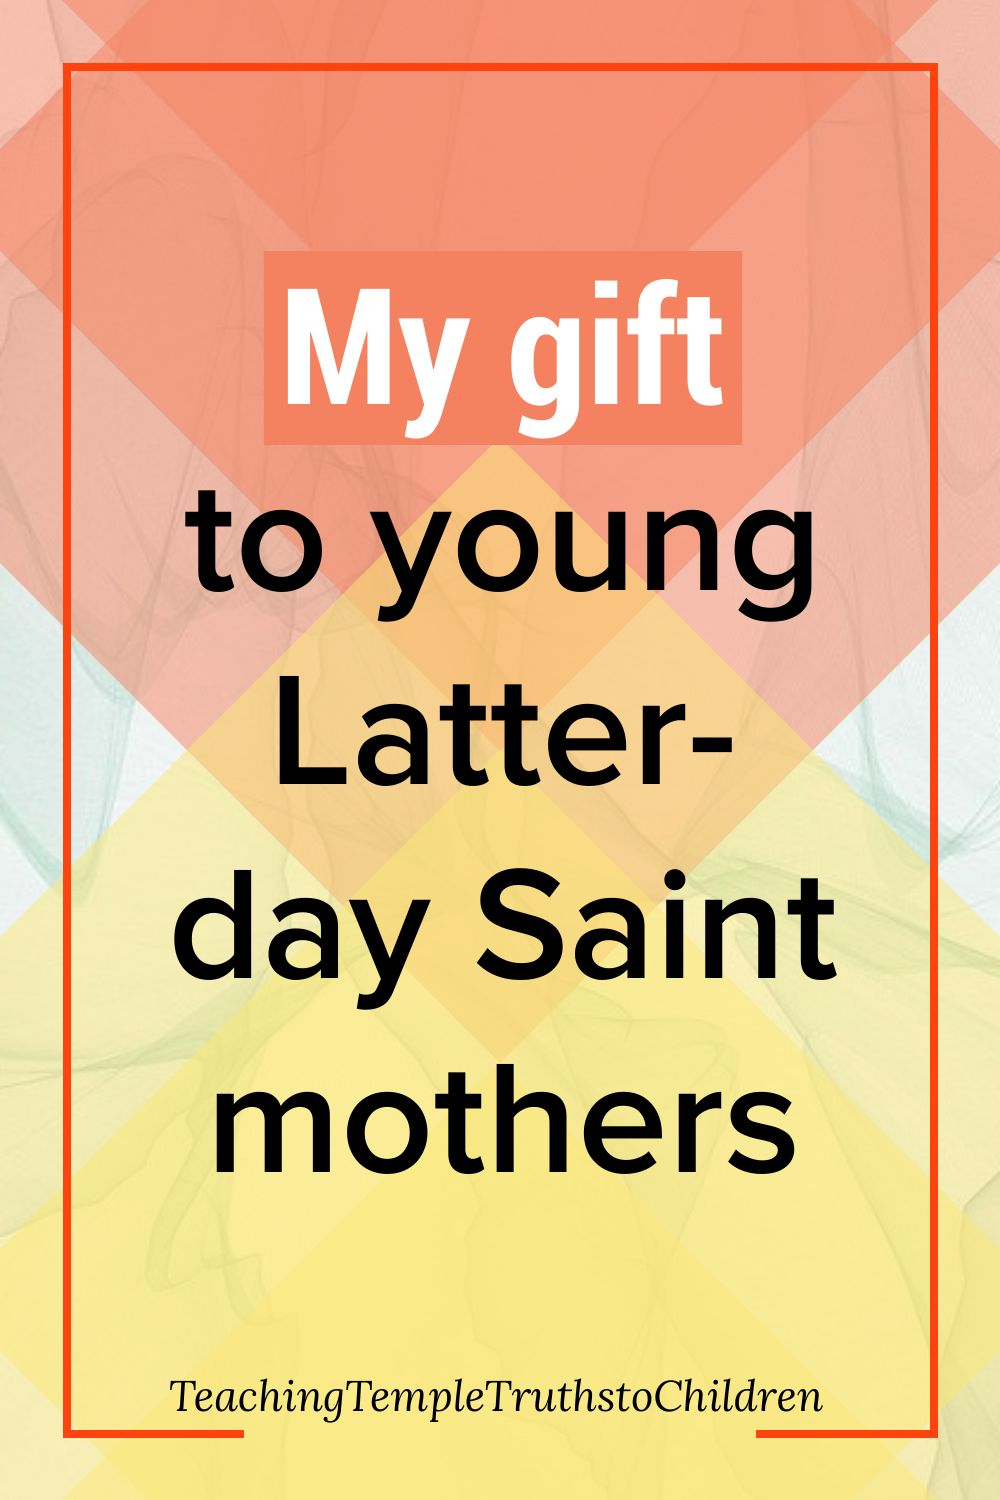 My gift to young Latter-day Saint mothers